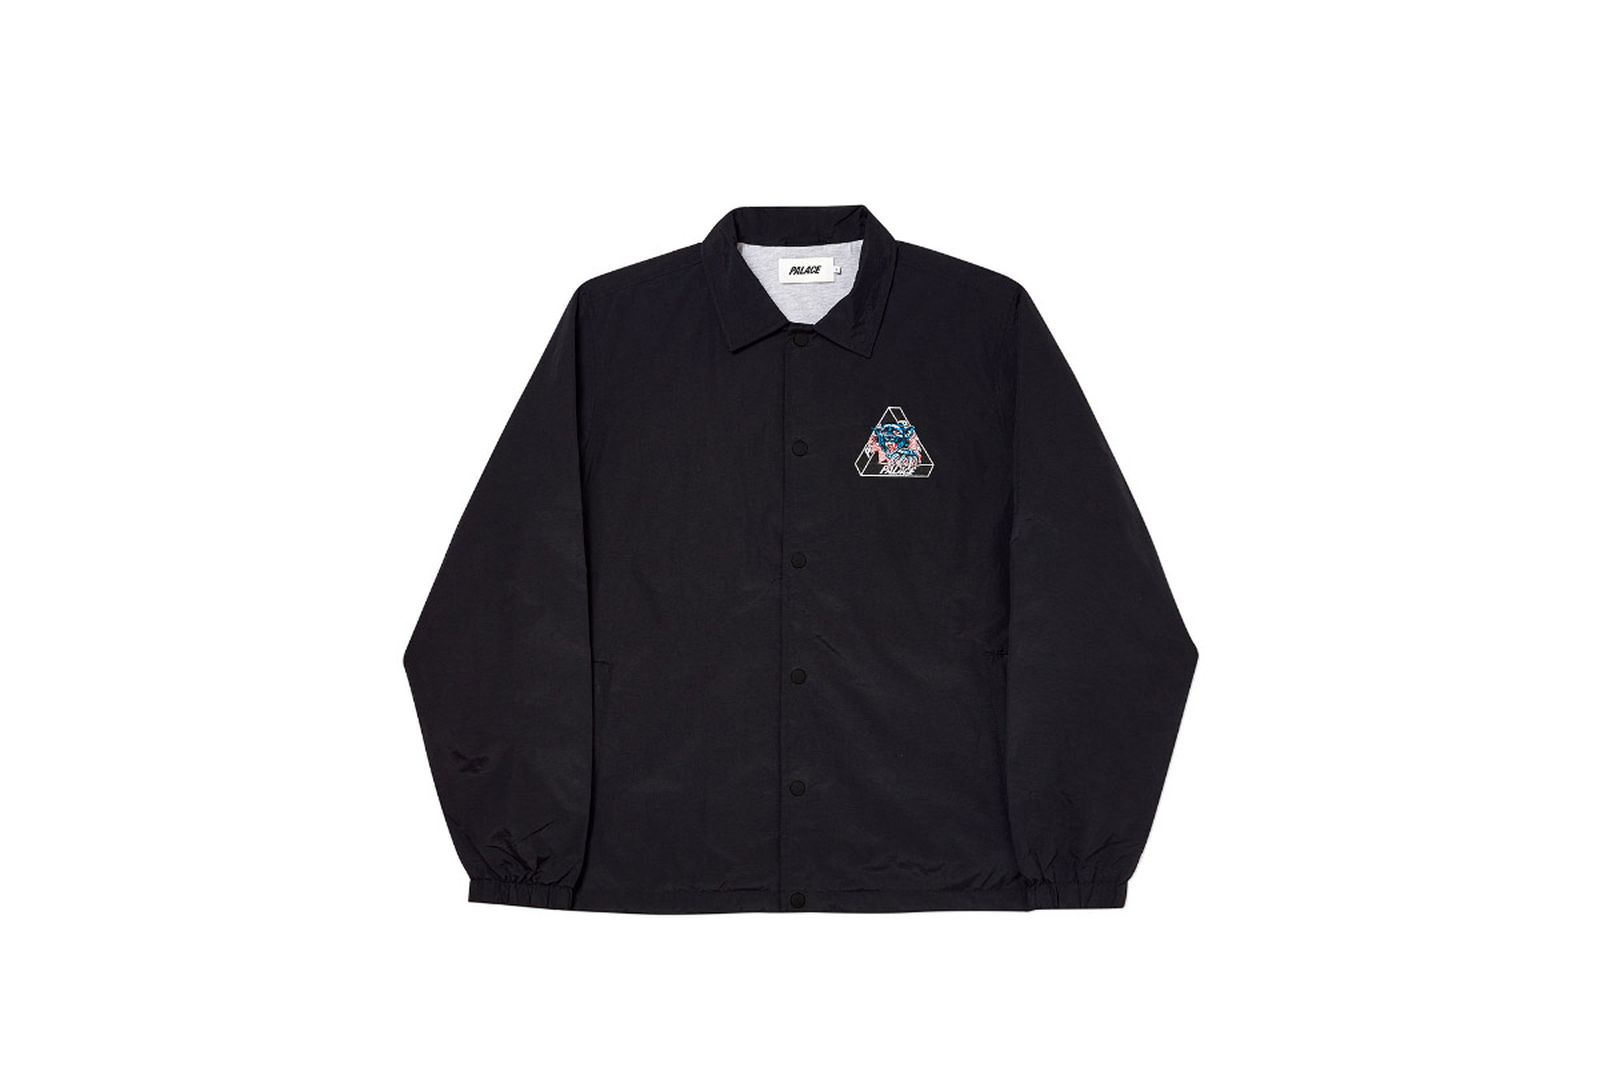 Palace 2019 Autumn Jacket Ripped Coach black front fw19